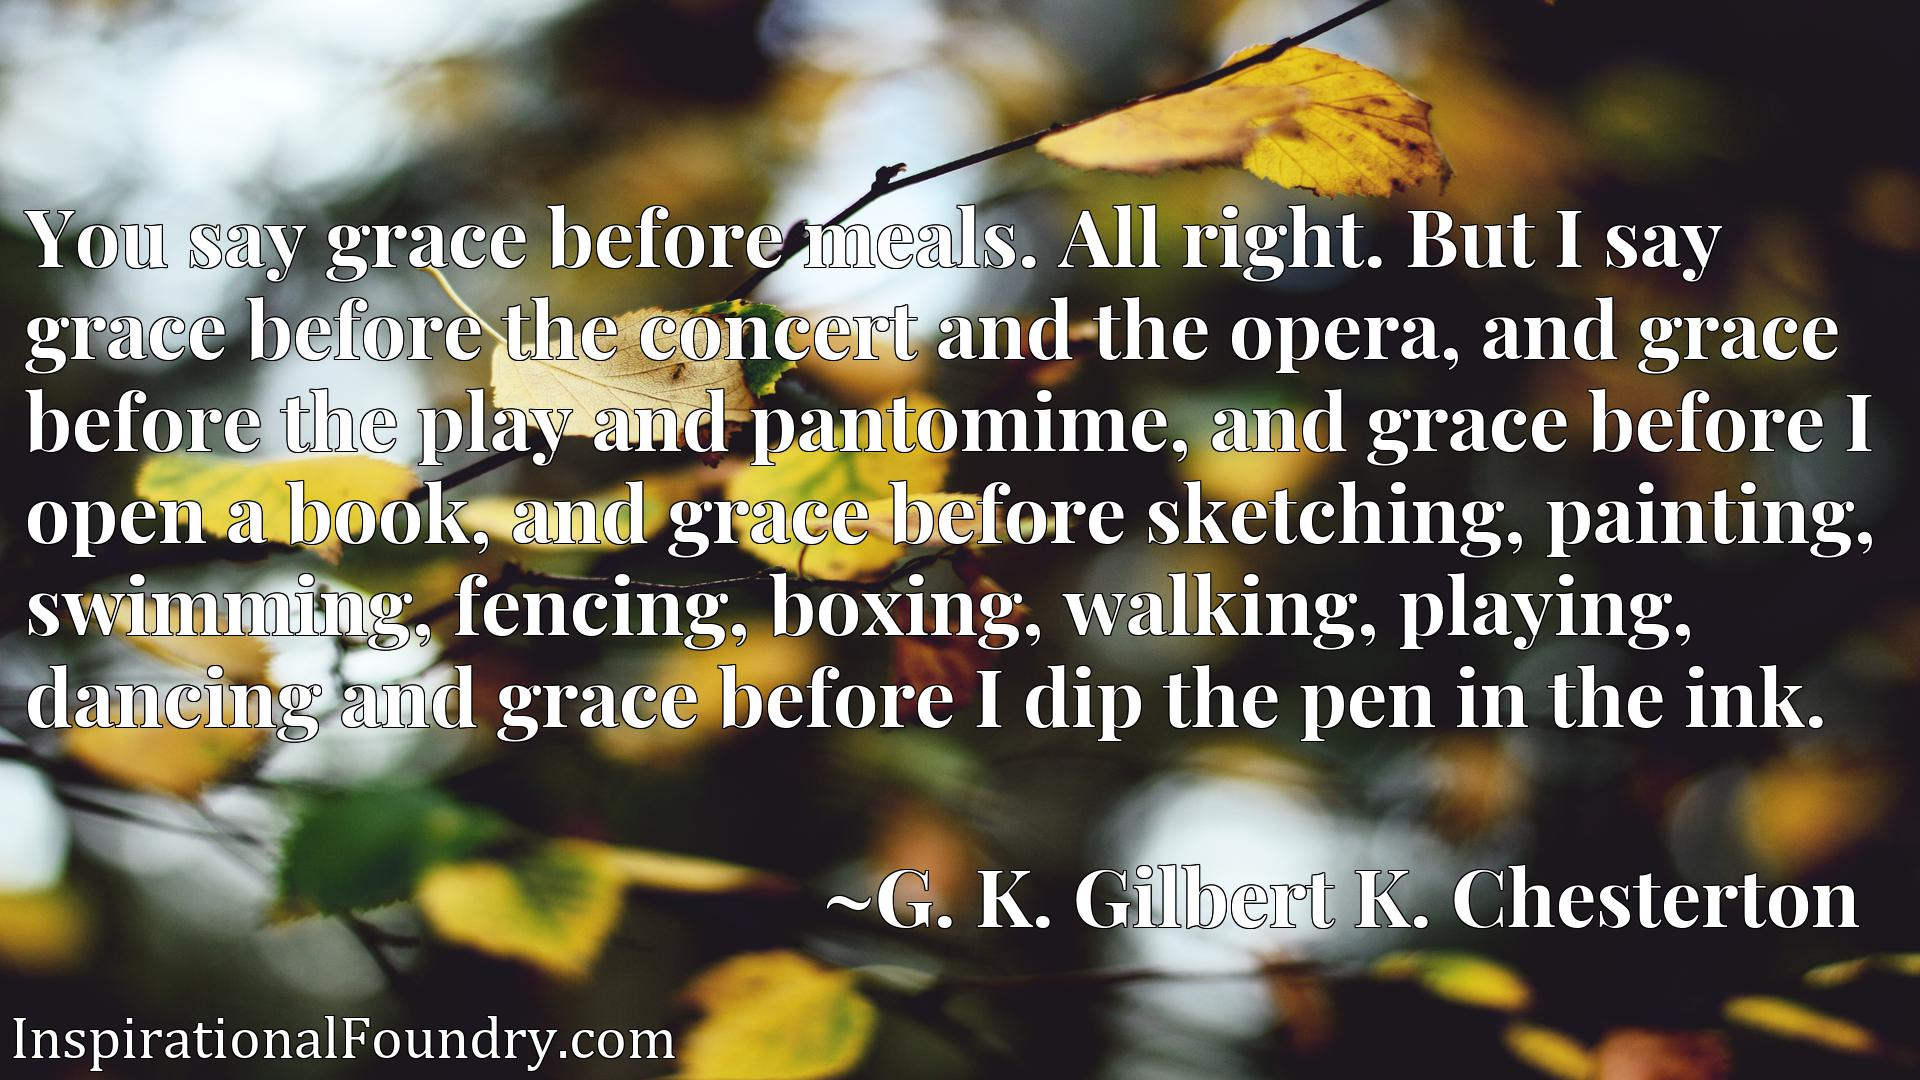 You say grace before meals. All right. But I say grace before the concert and the opera, and grace before the play and pantomime, and grace before I open a book, and grace before sketching, painting, swimming, fencing, boxing, walking, playing, dancing and grace before I dip the pen in the ink.